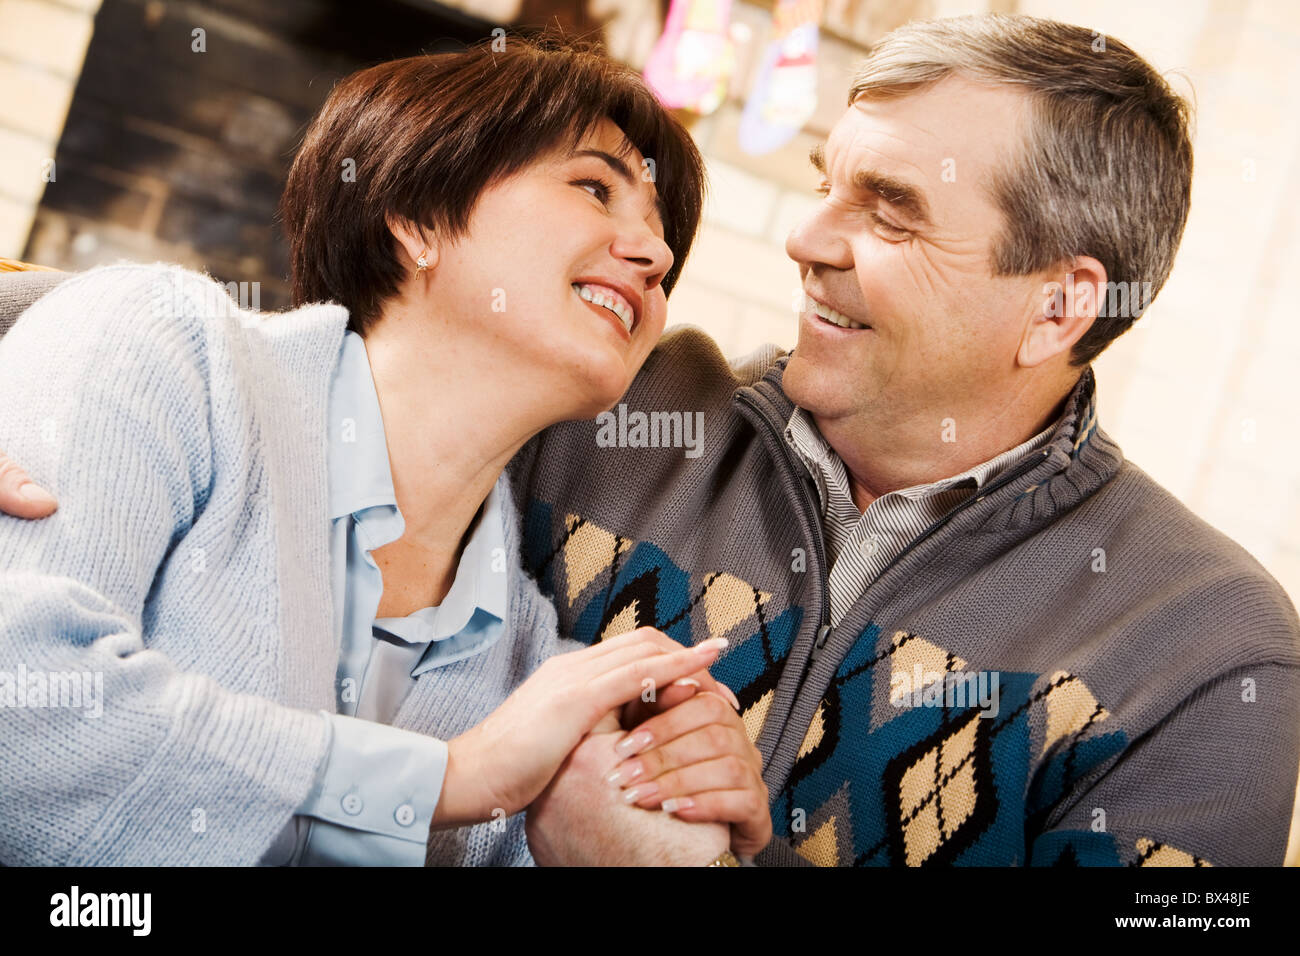 Portrait of happy senior couple looking at each other with smiles - Stock Image